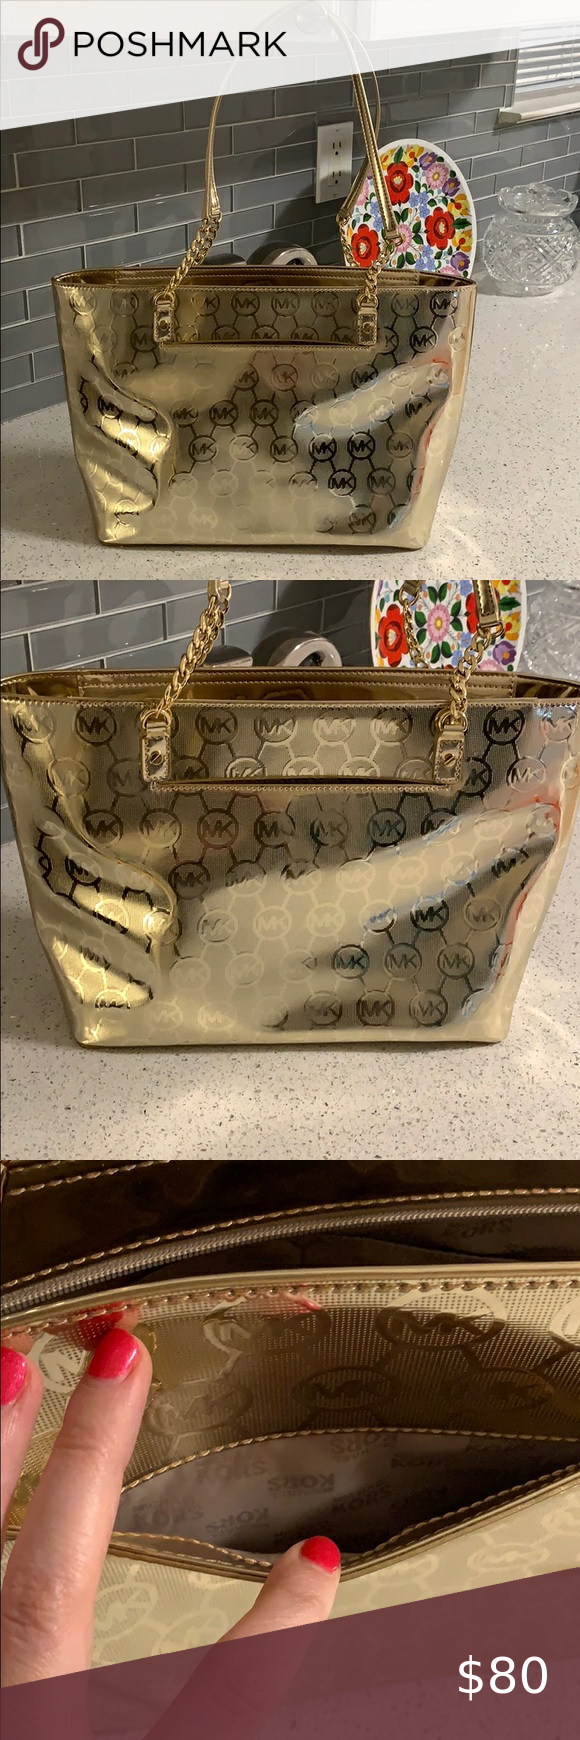 Gold Michael Kors purse Brand new without tags Michael Kors gold purse! Zips at the top. Lots of storage! Beautiful bag! #mk #michaelkors #purse #michaelkorspurse Michael Kors Bags Shoulder Bags